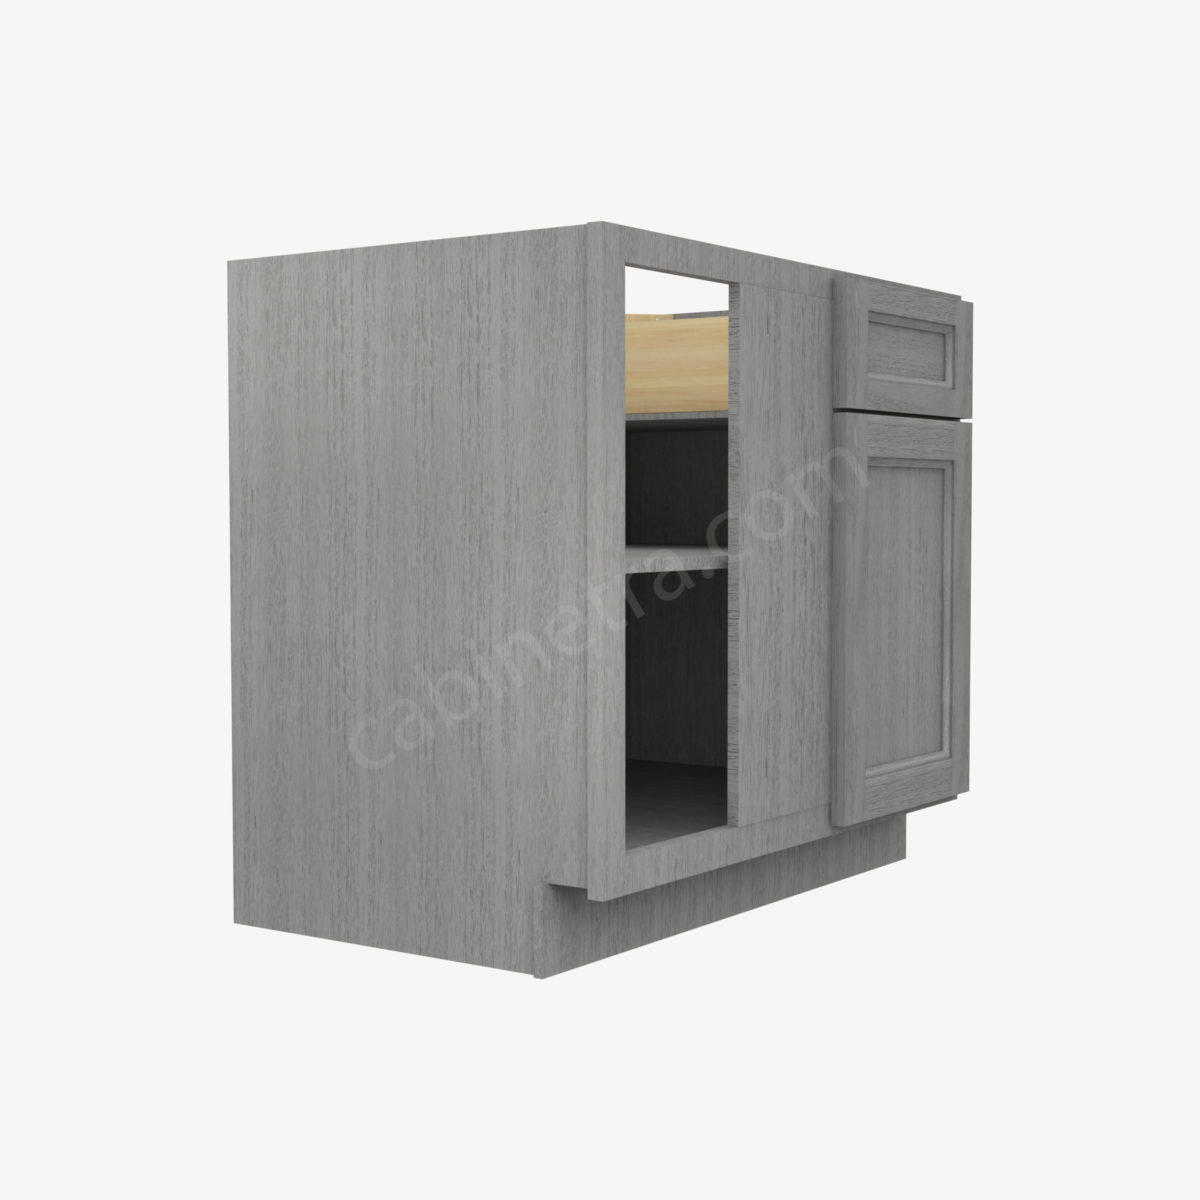 TG BBLC39 42 36W 4 Forevermark Midtown Grey Cabinetra scaled